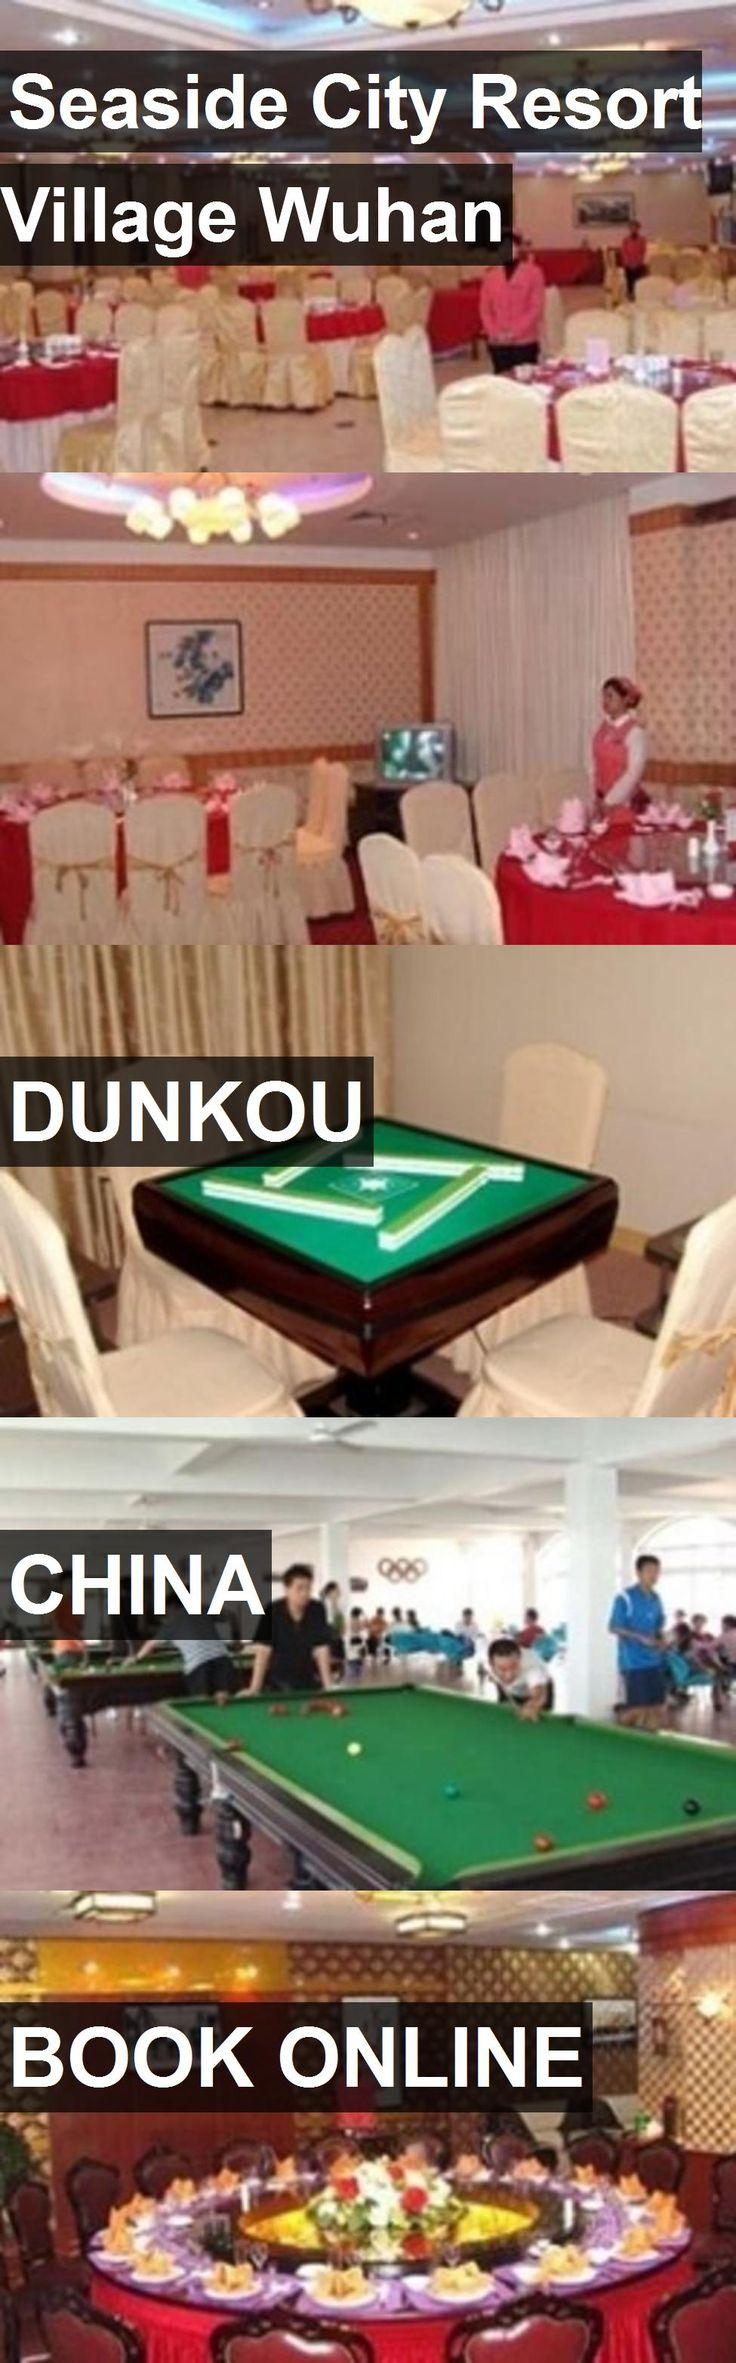 Hotel Seaside City Resort Village Wuhan in Dunkou, China. For more information, photos, reviews and best prices please follow the link. #China #Dunkou #SeasideCityResortVillageWuhan #hotel #travel #vacation